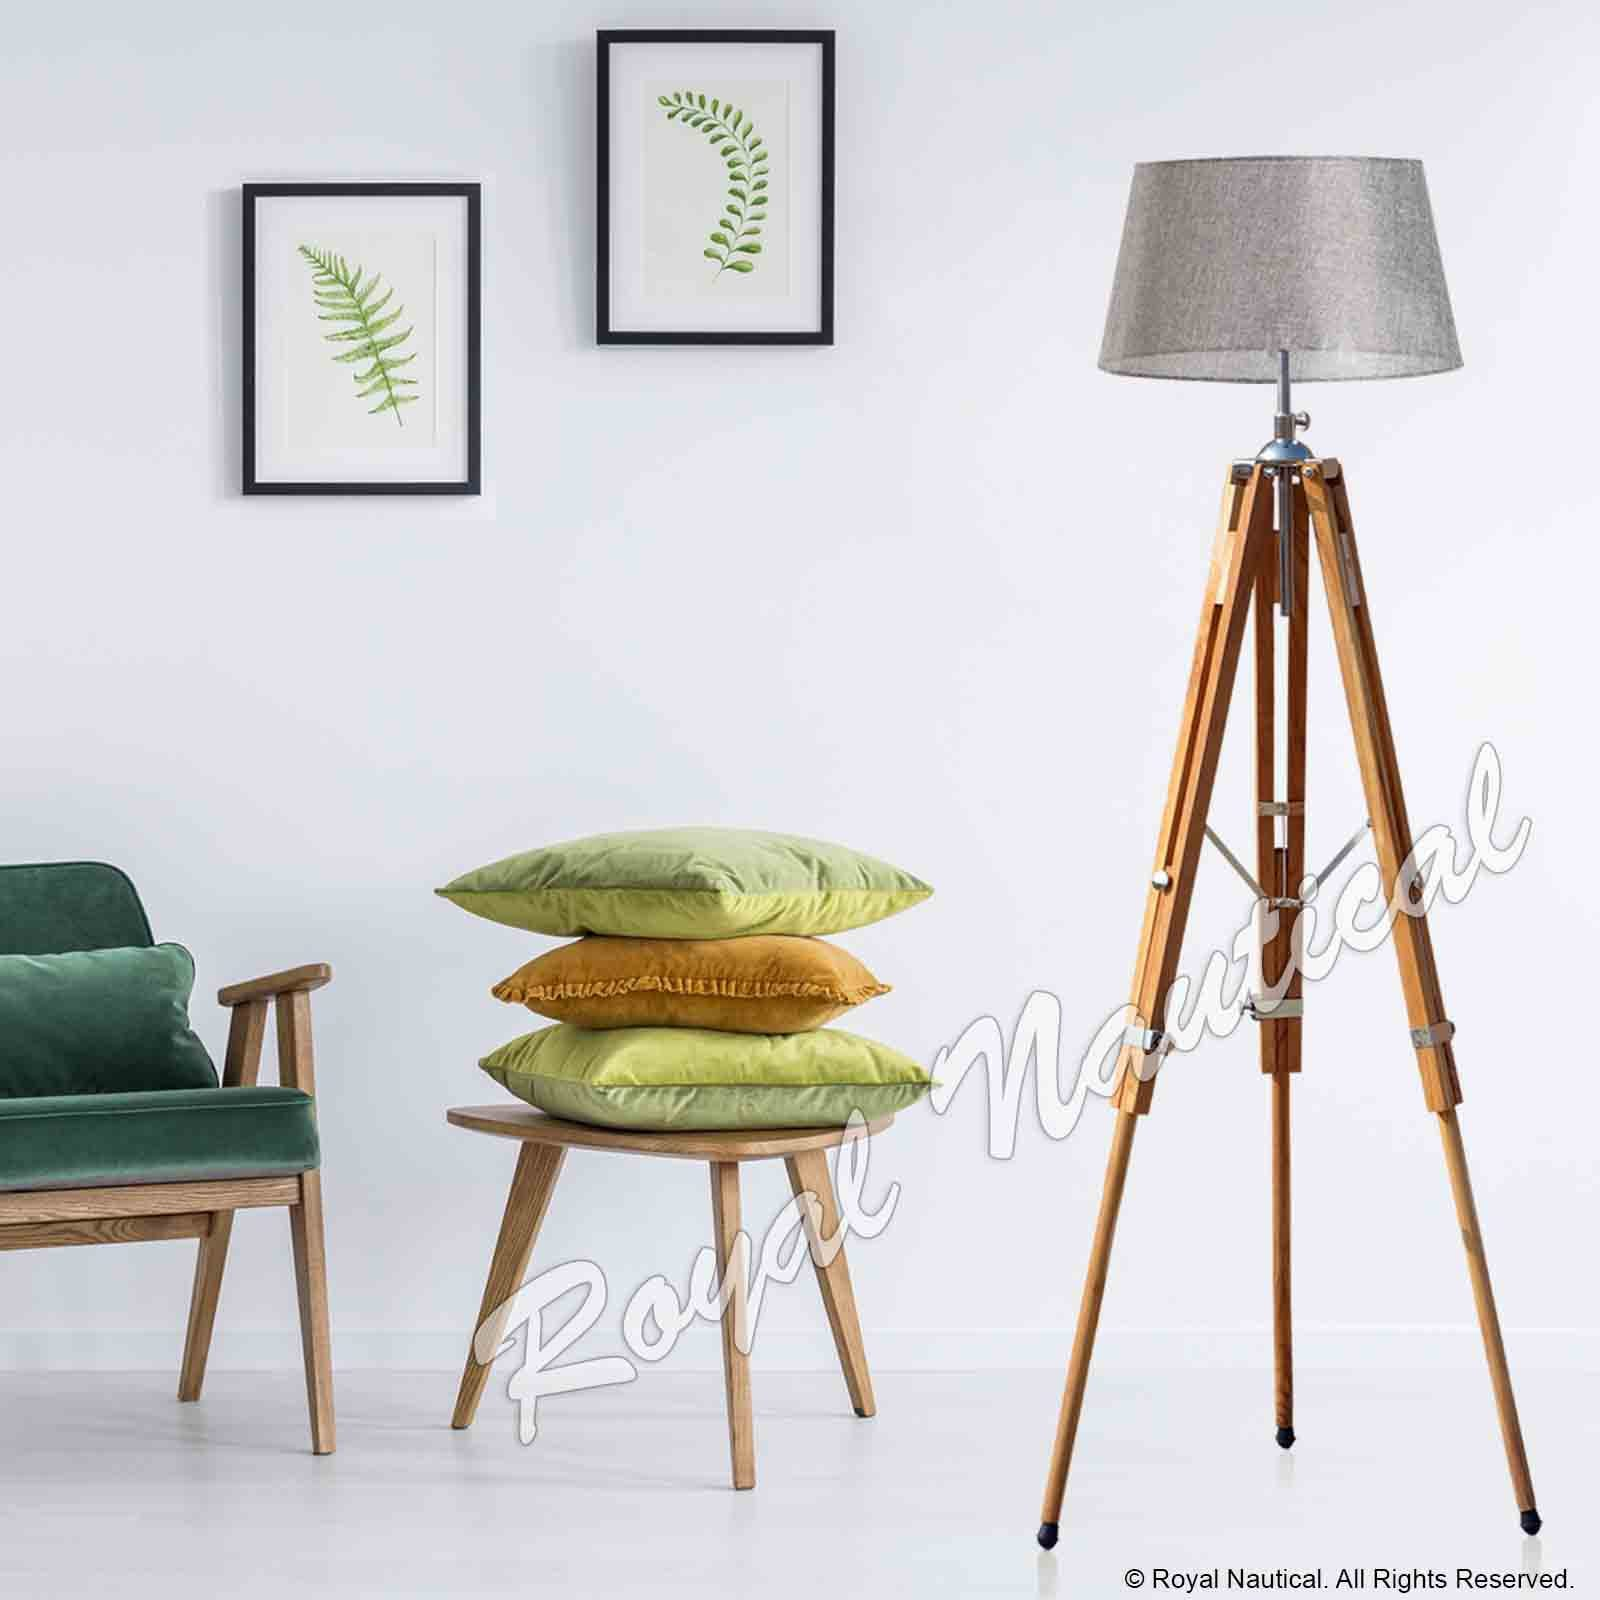 Nautical Teak Wood Tripod Wooden Floor Lamp Lighting Home Decor Without Shade